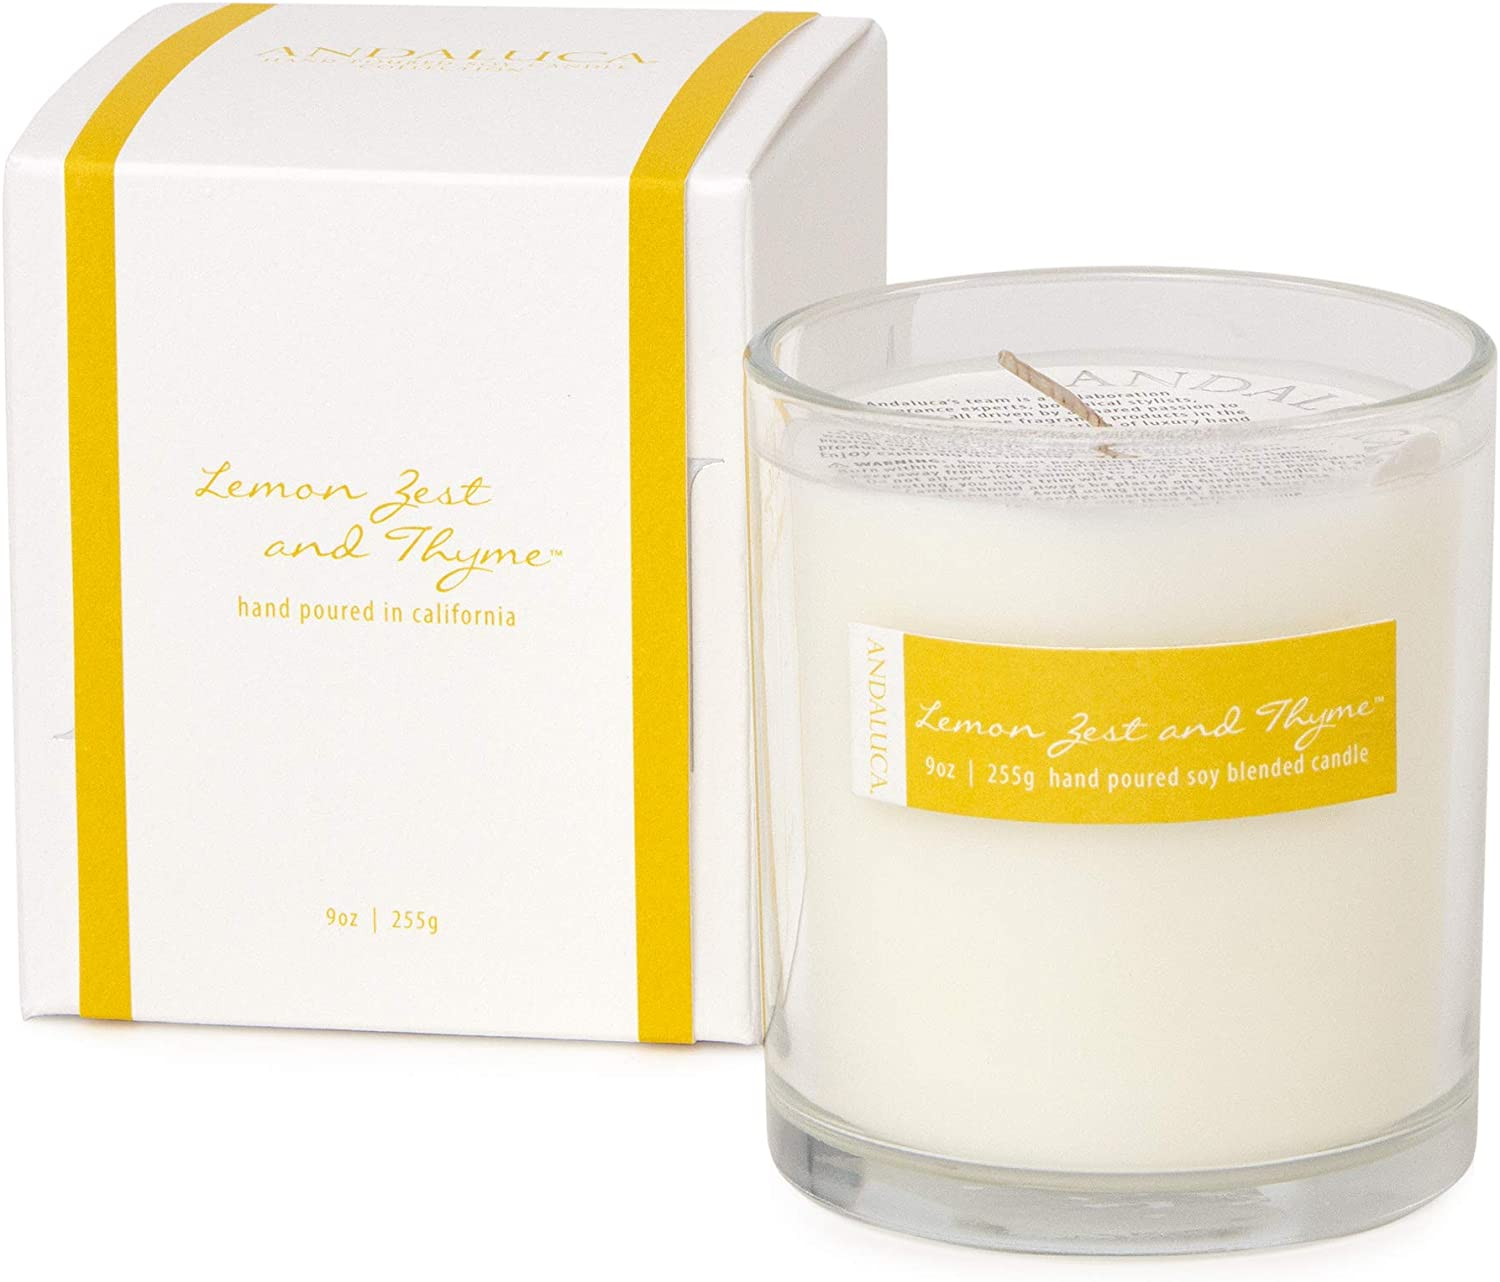 Andaluca candles